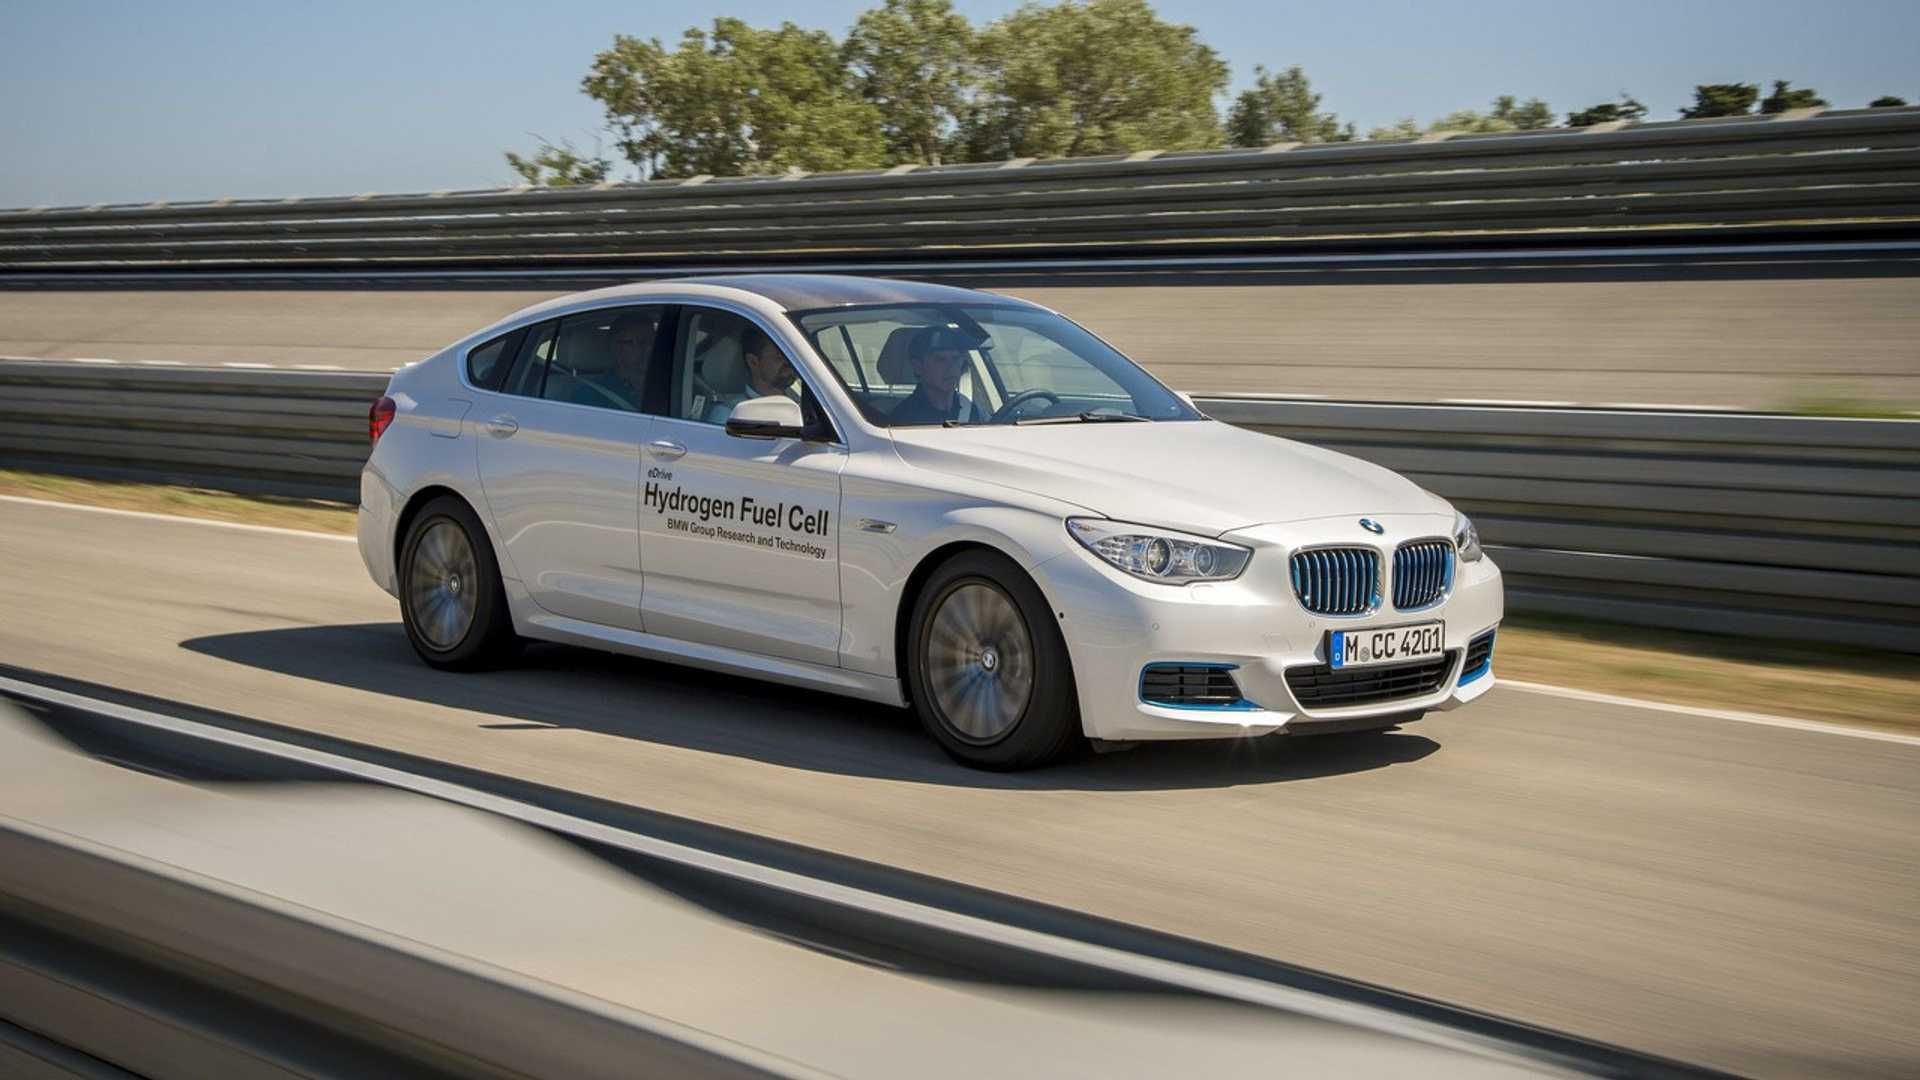 49 All New BMW Fuel Cell 2020 Specs and Review by BMW Fuel Cell 2020